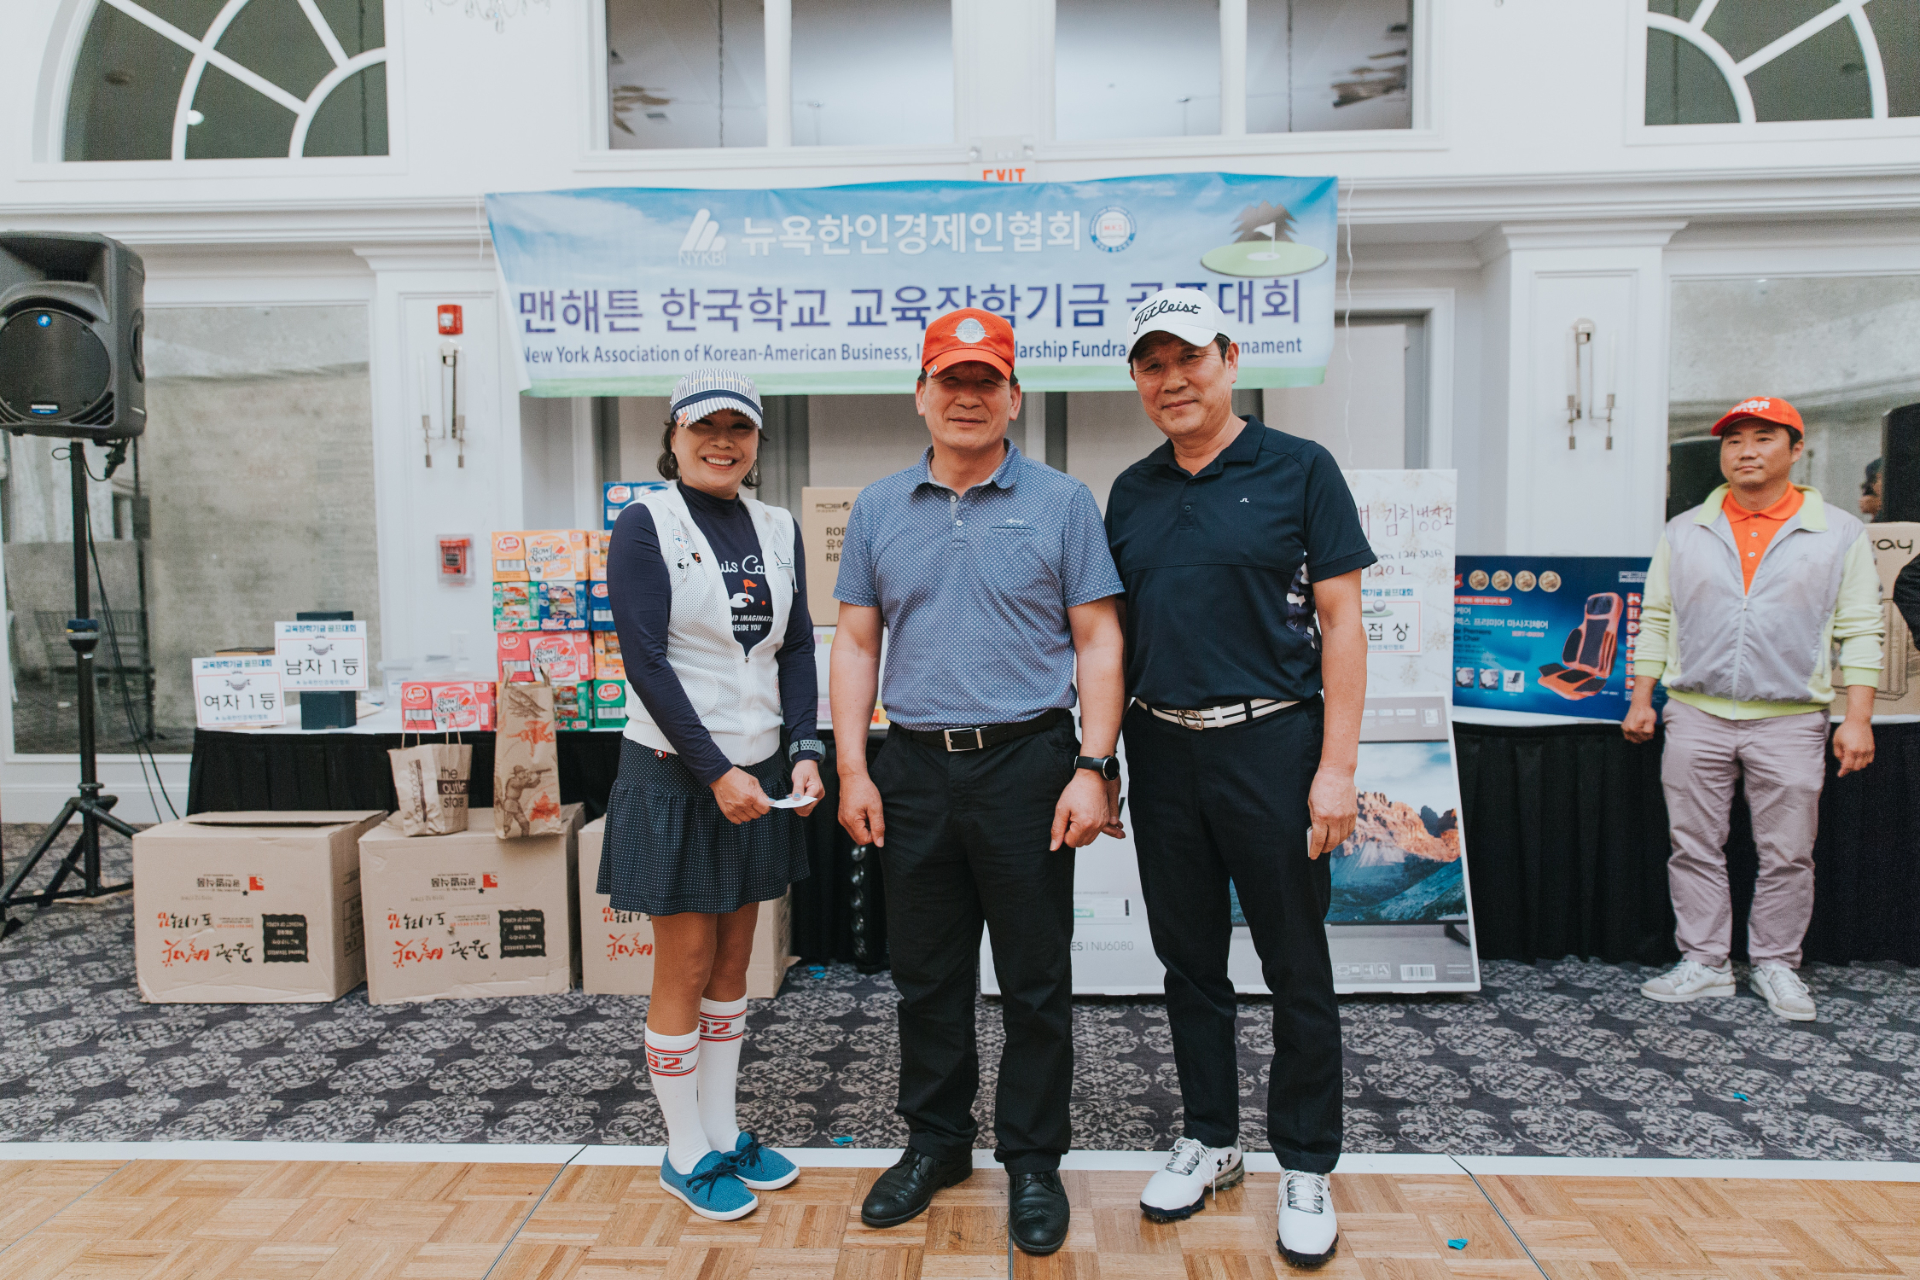 https://nykbi.com/new/wp-content/uploads/2019/07/190619-Scholarship-Fundraising-Golf-Tournament-056.jpg